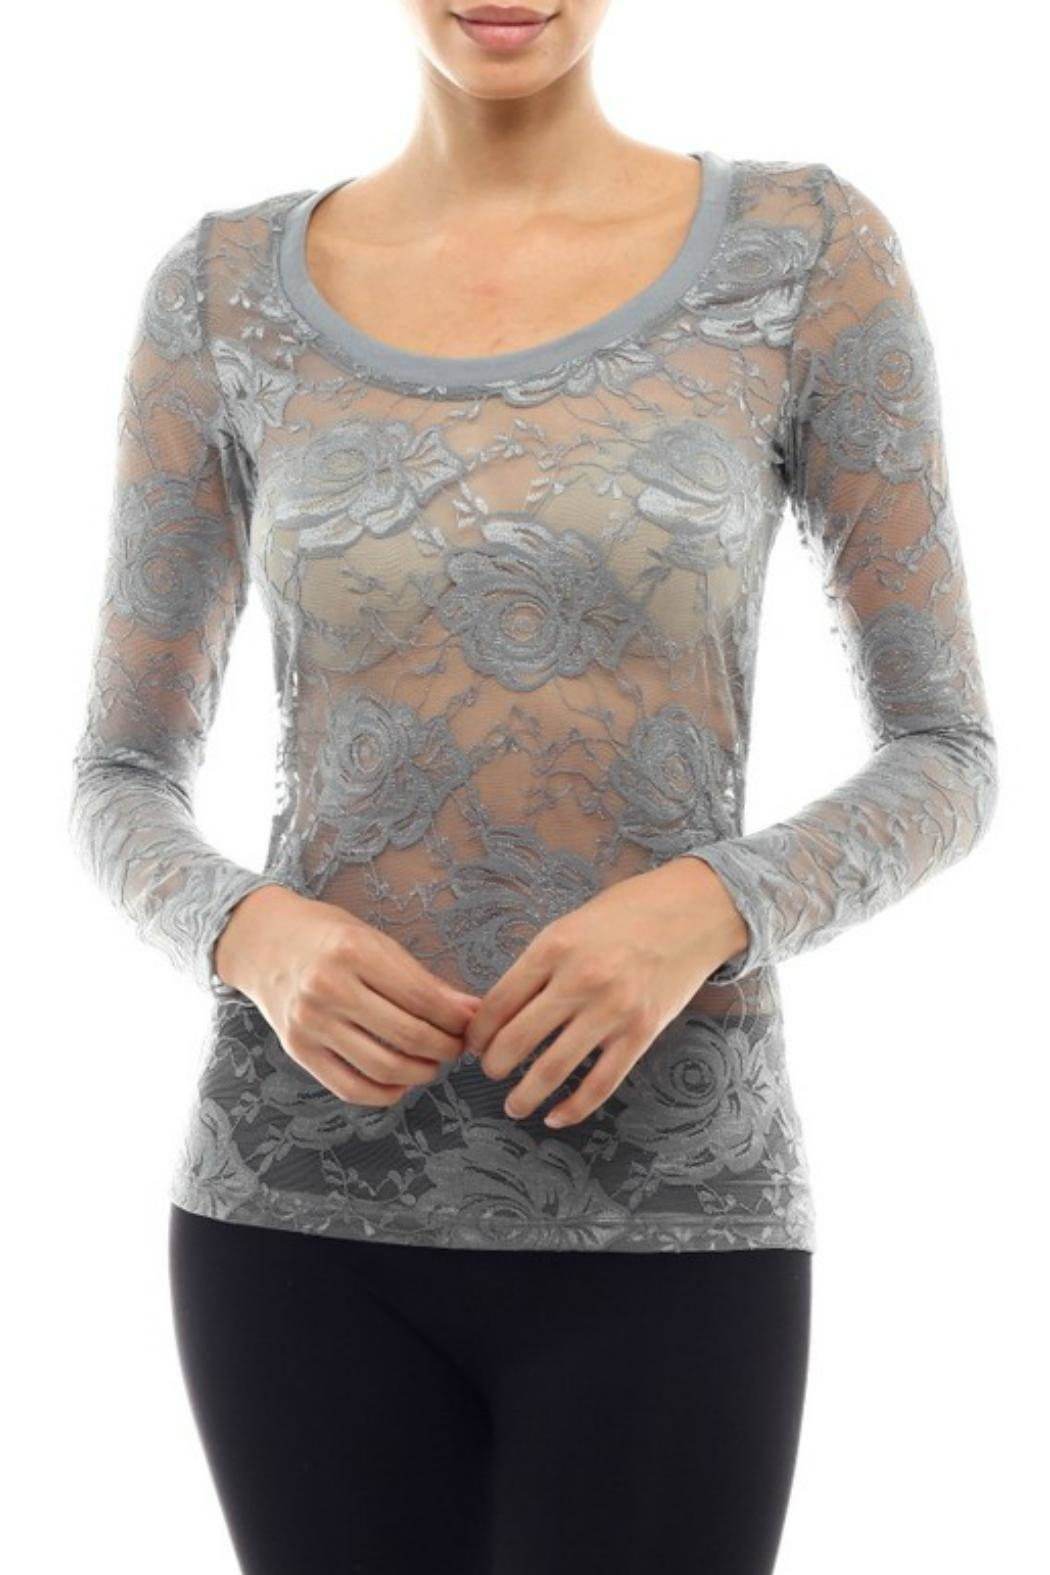 Modern Emporium Hipster Lace Top - Main Image